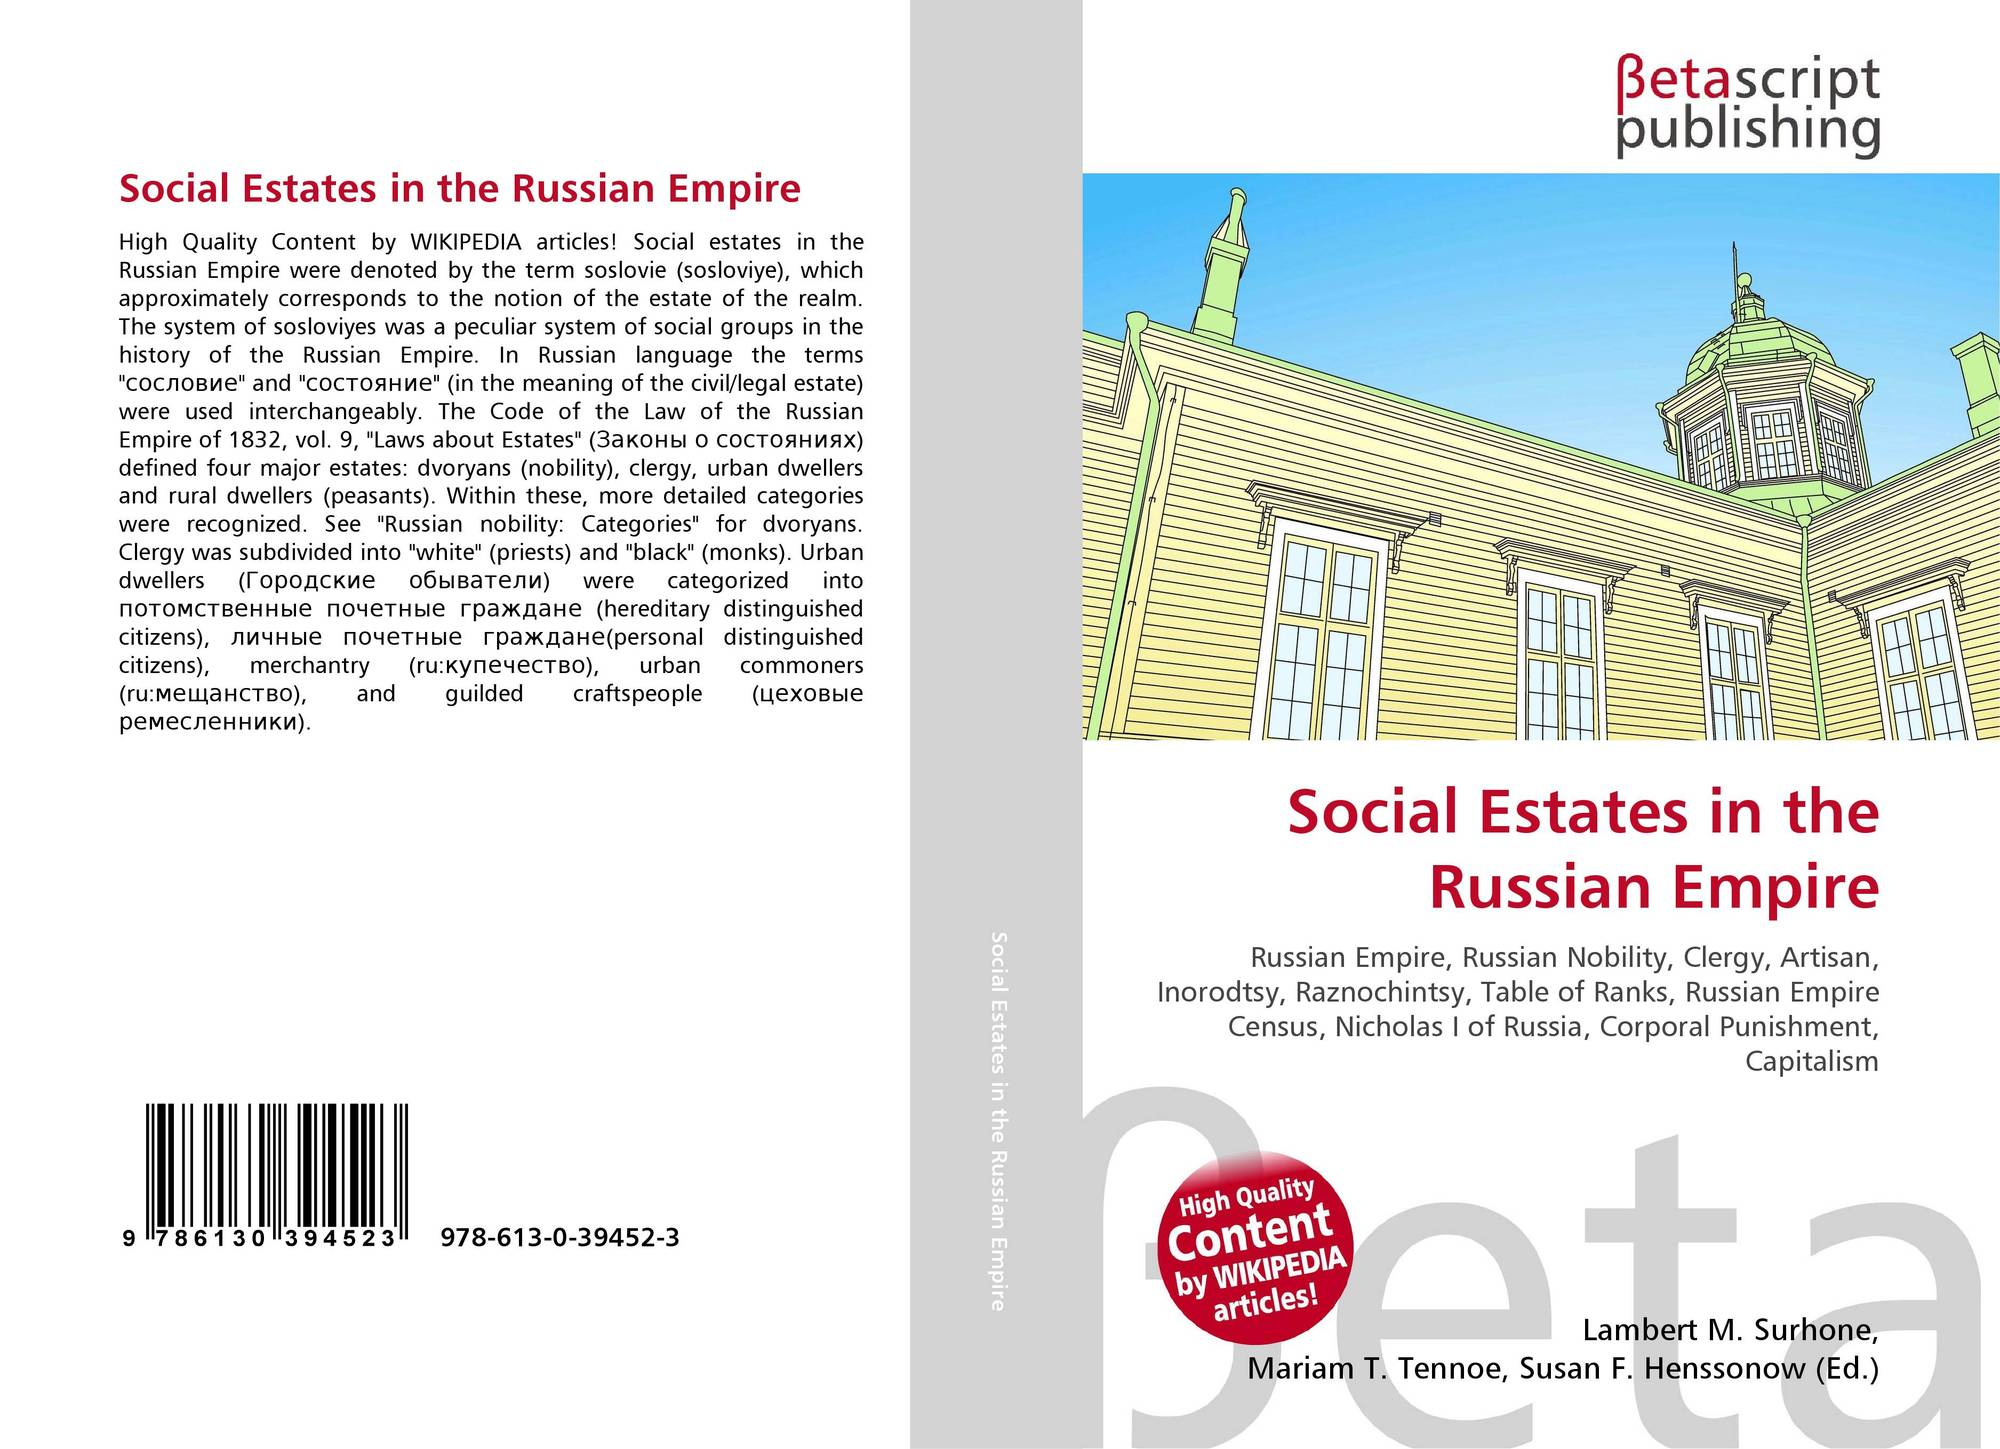 Social Estates in the Russian Empire, 978-613-0-39452-3, 6130394527